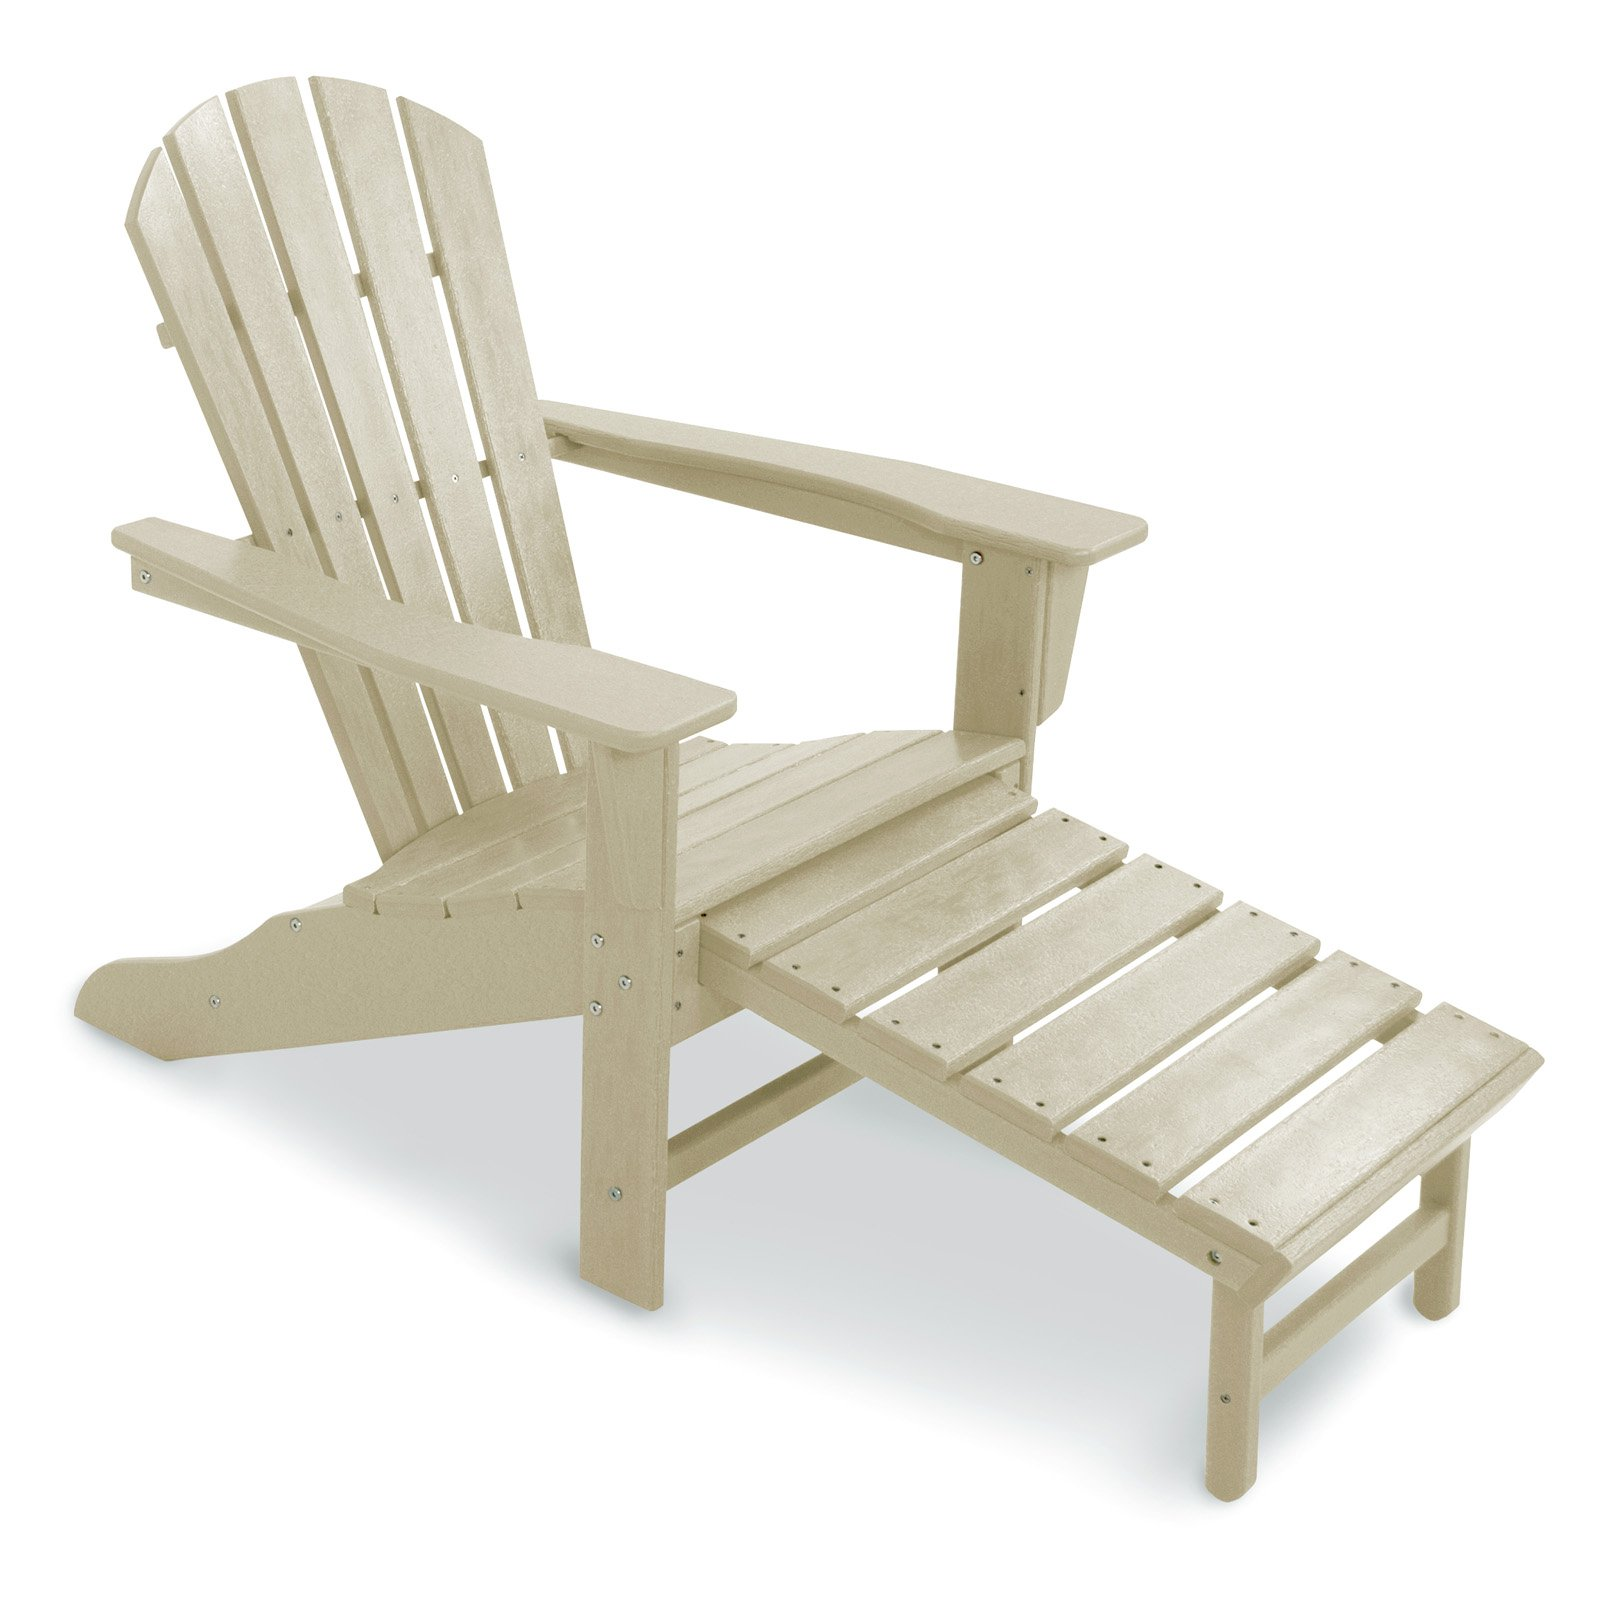 POLYWOOD Recycled Plastic Big Daddy Adirondack Chair with